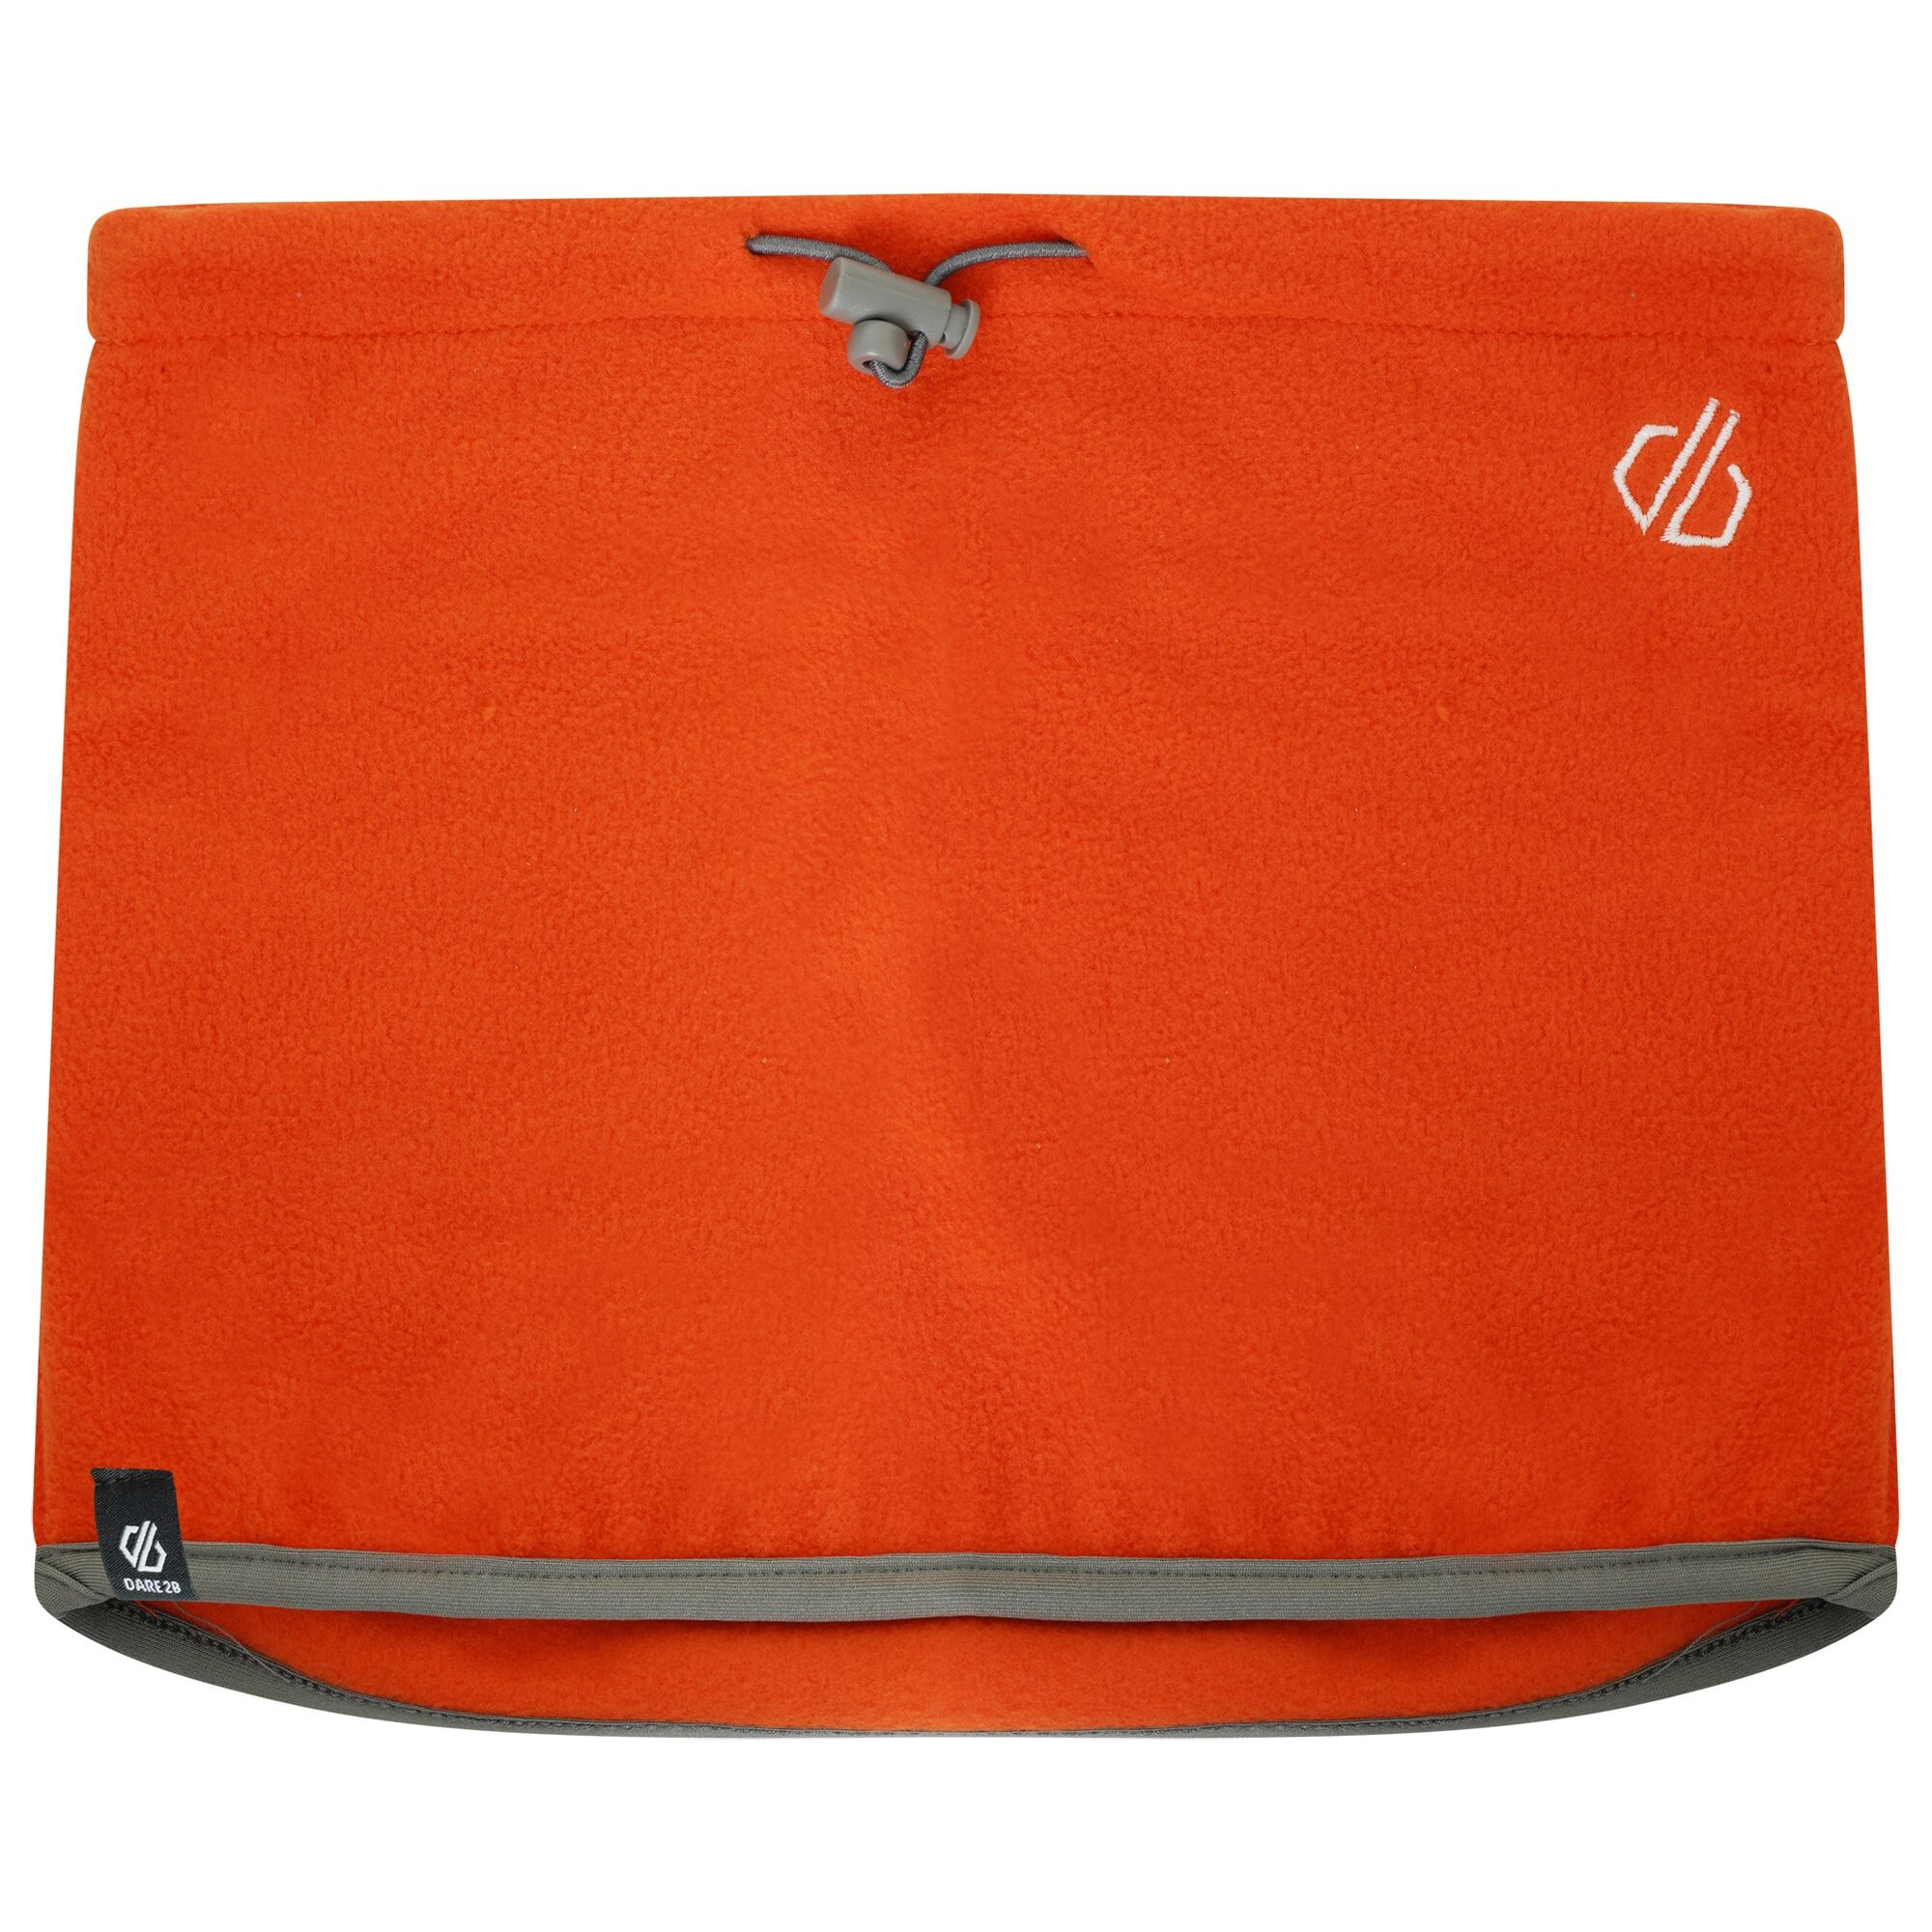 Dare2b Fleece Halswärmer orange